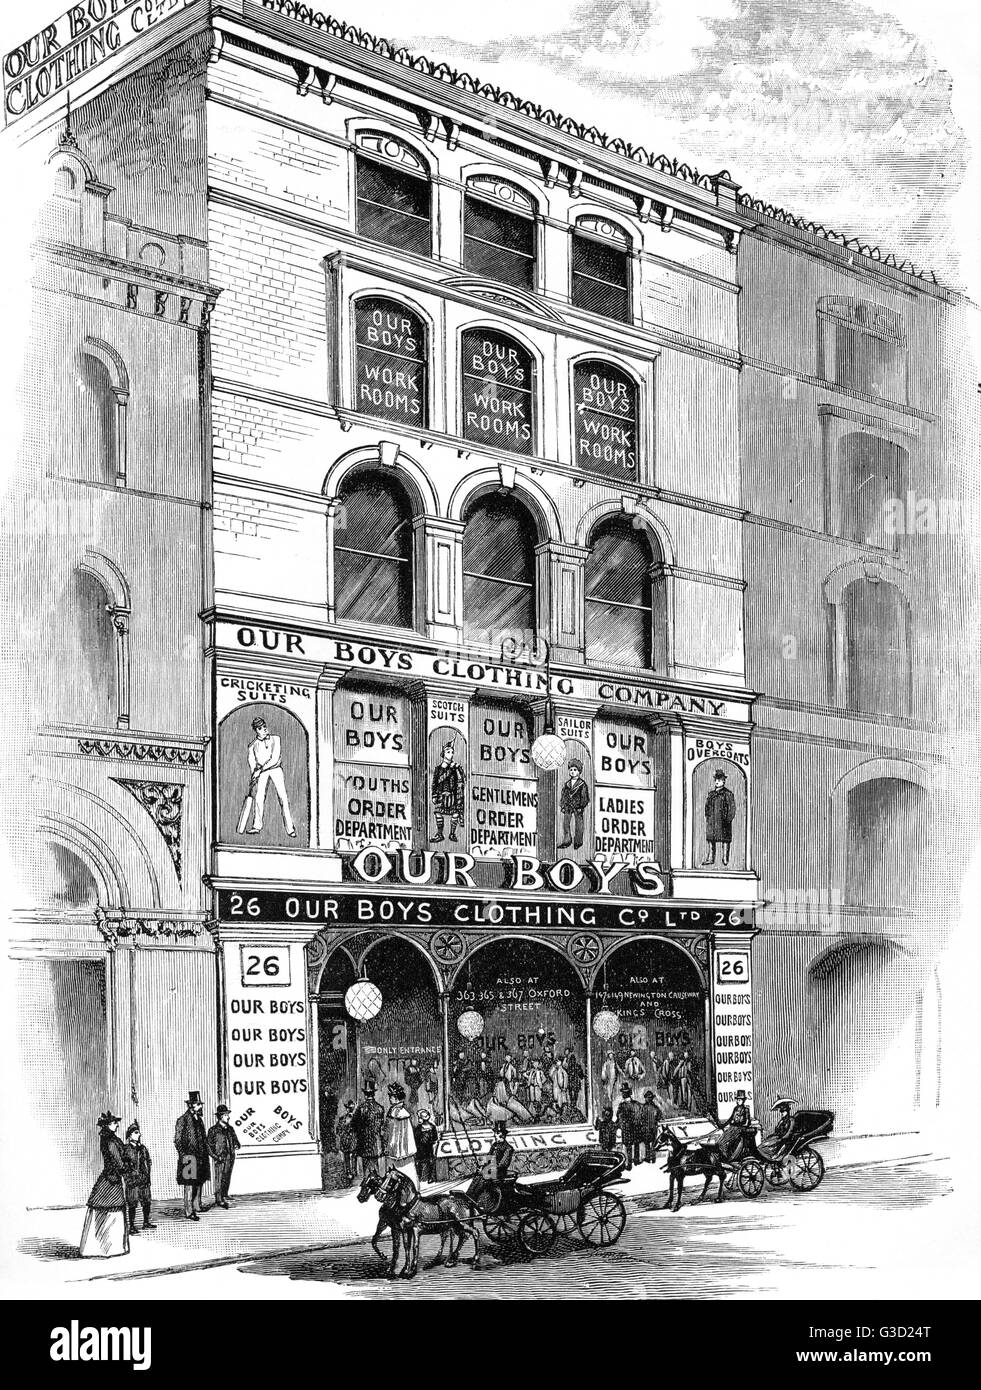 View of Premises at 26, Holborn Viaduct, London. Image of the outside of Our Boys Clothing Company from outside. - Stock Image